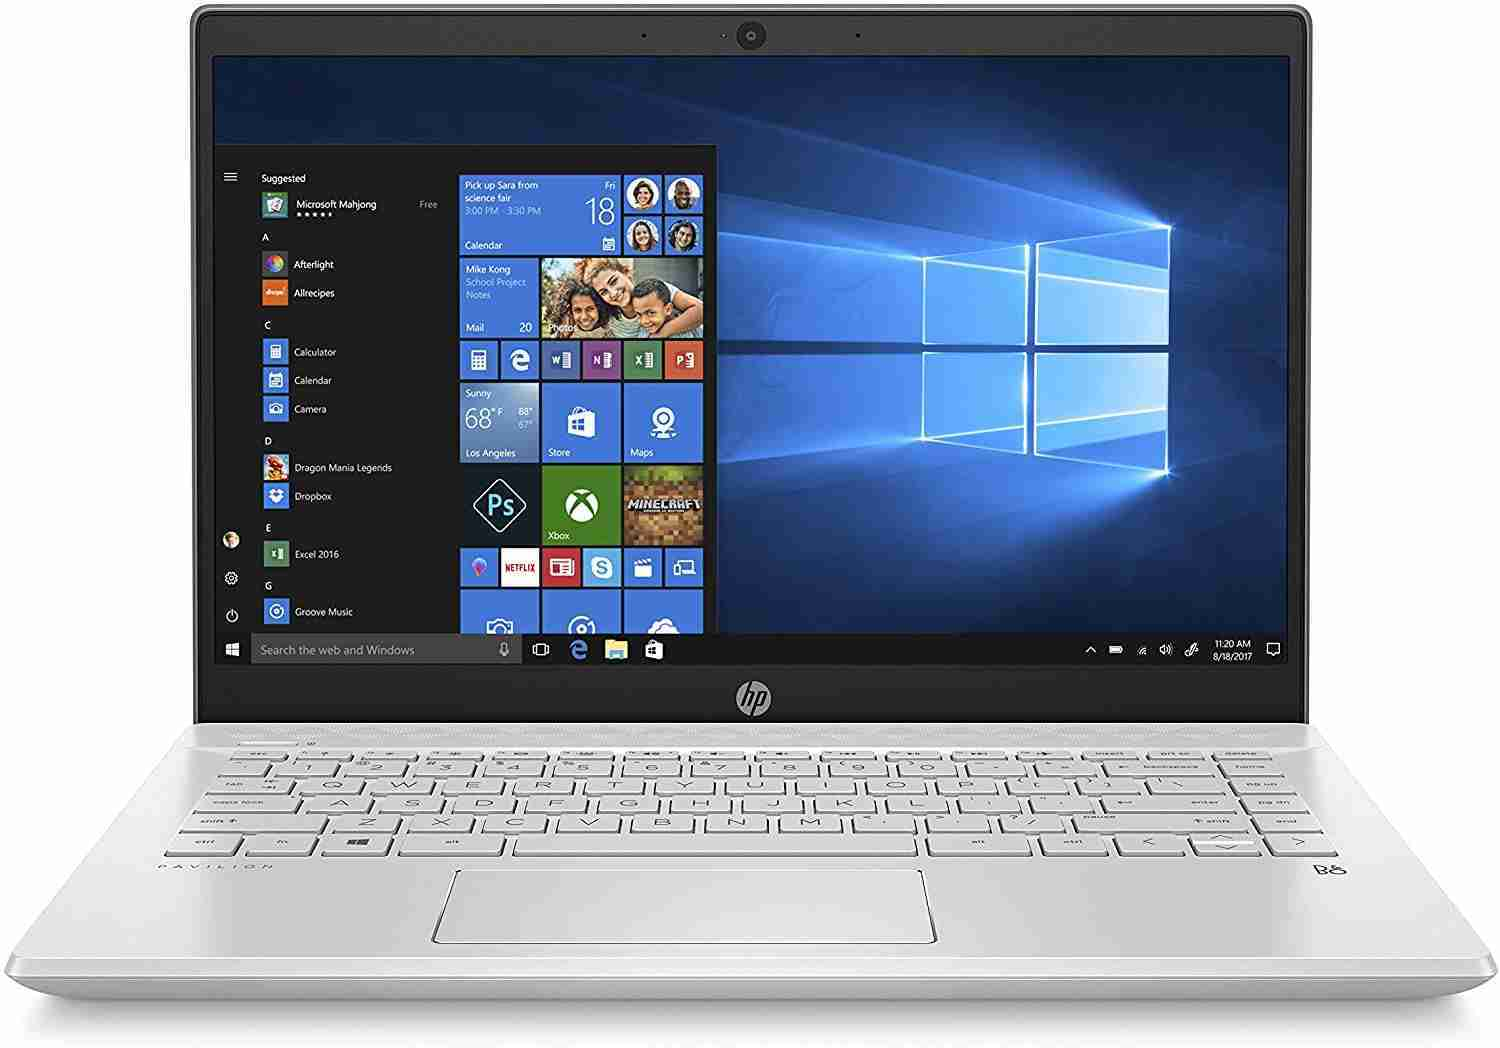 HP-PC Pavilion 14-ce3034nl Notebook